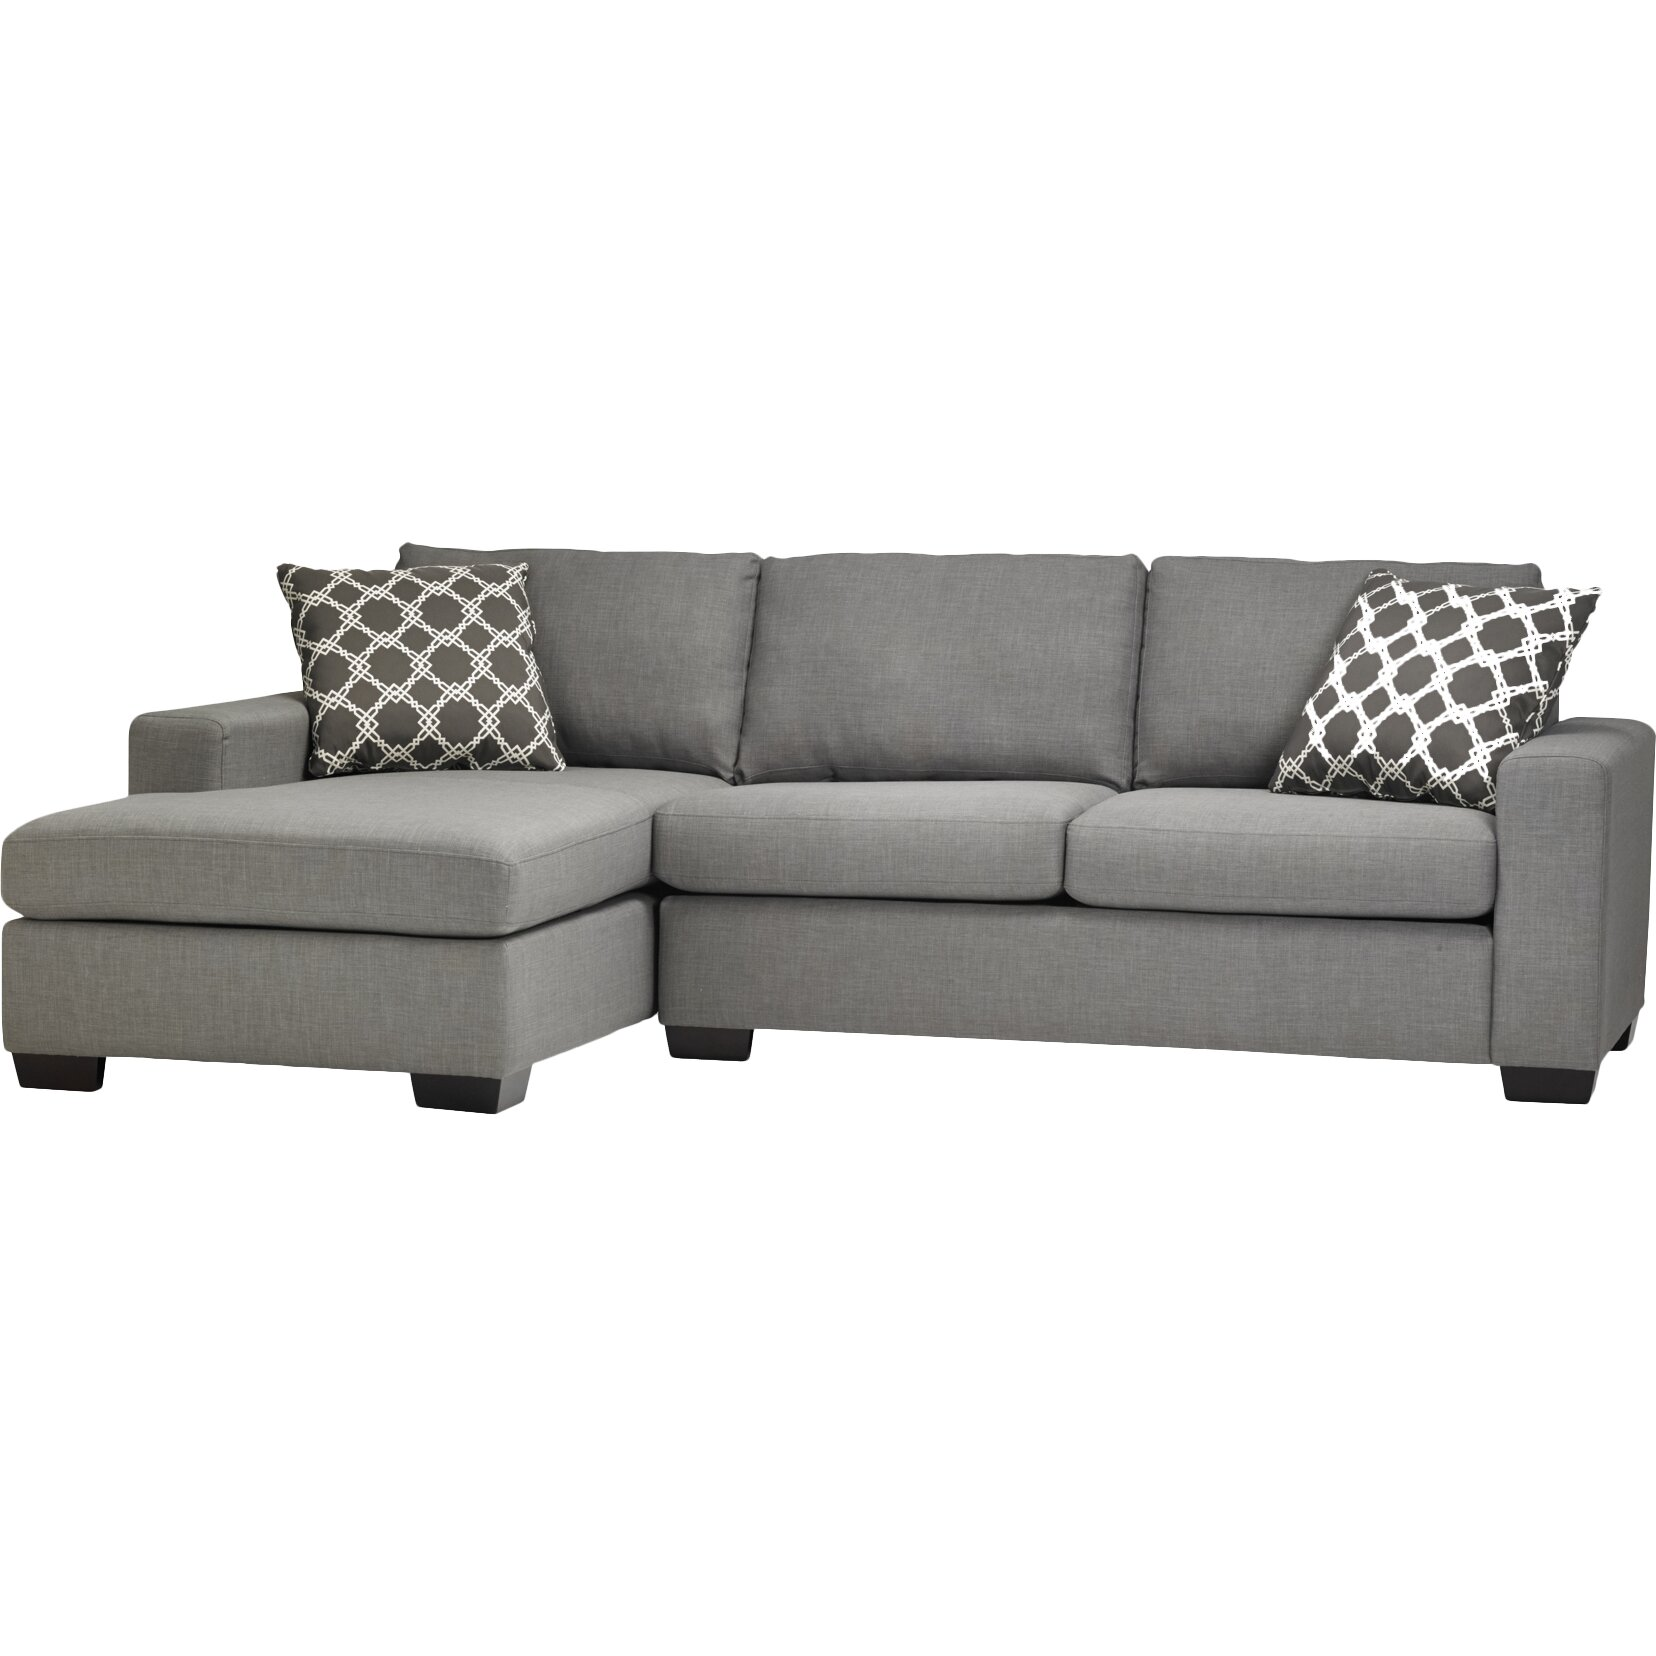 ■sofa bed Young Rooms To Go Sofa Beds Rooms To Go Review About